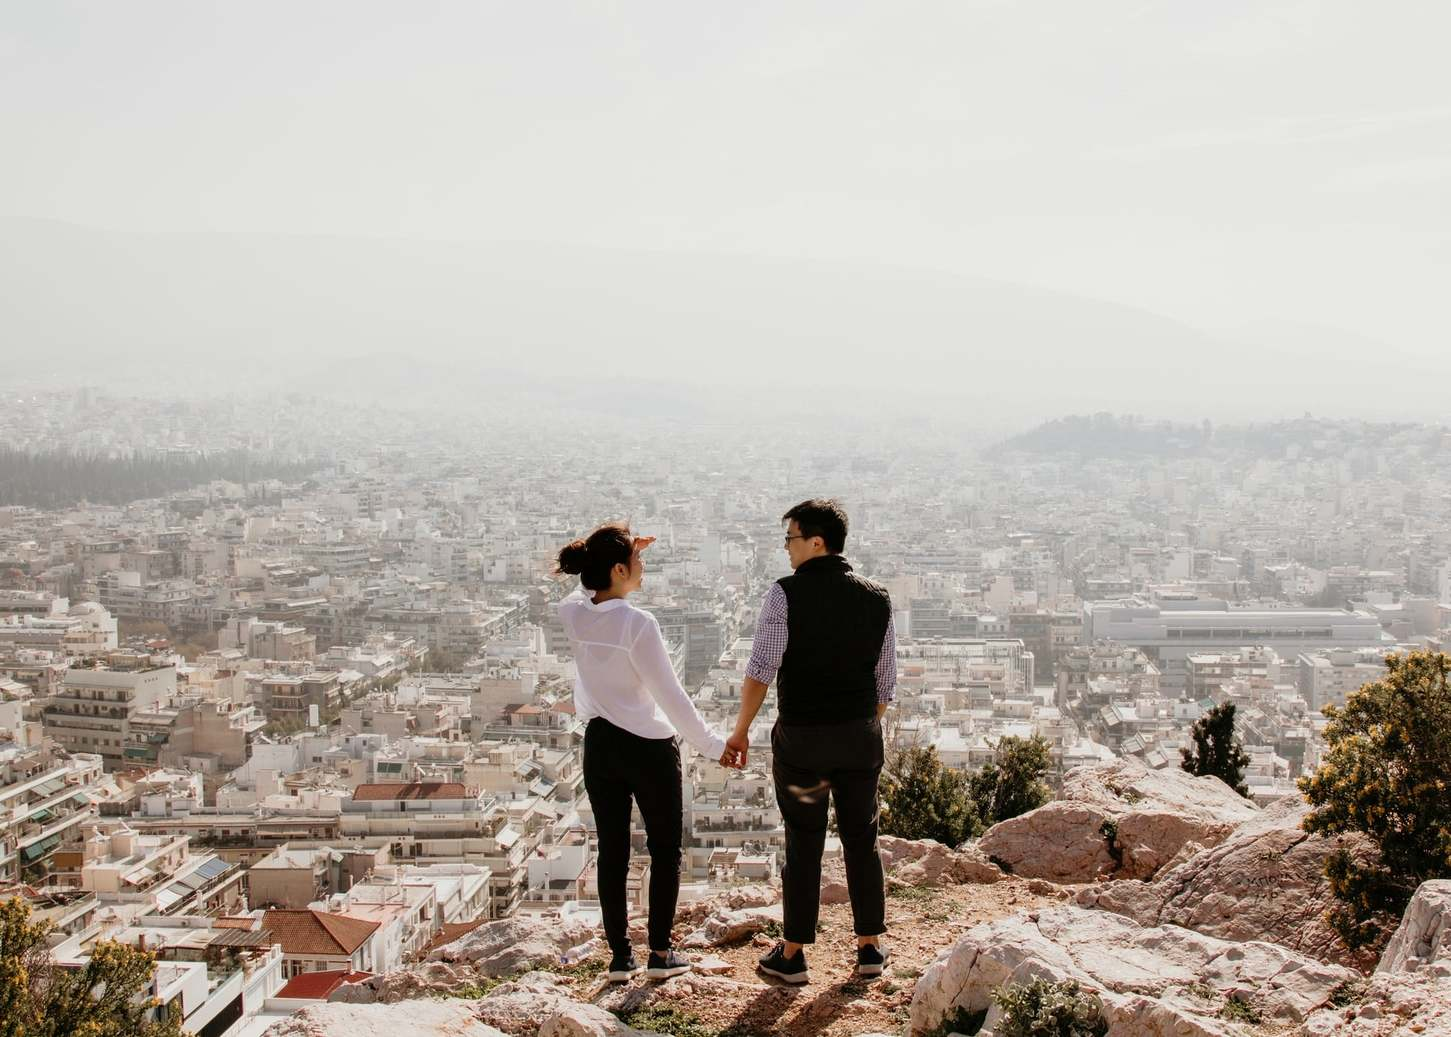 A couple, holding hands, overlooking a city from a look out point